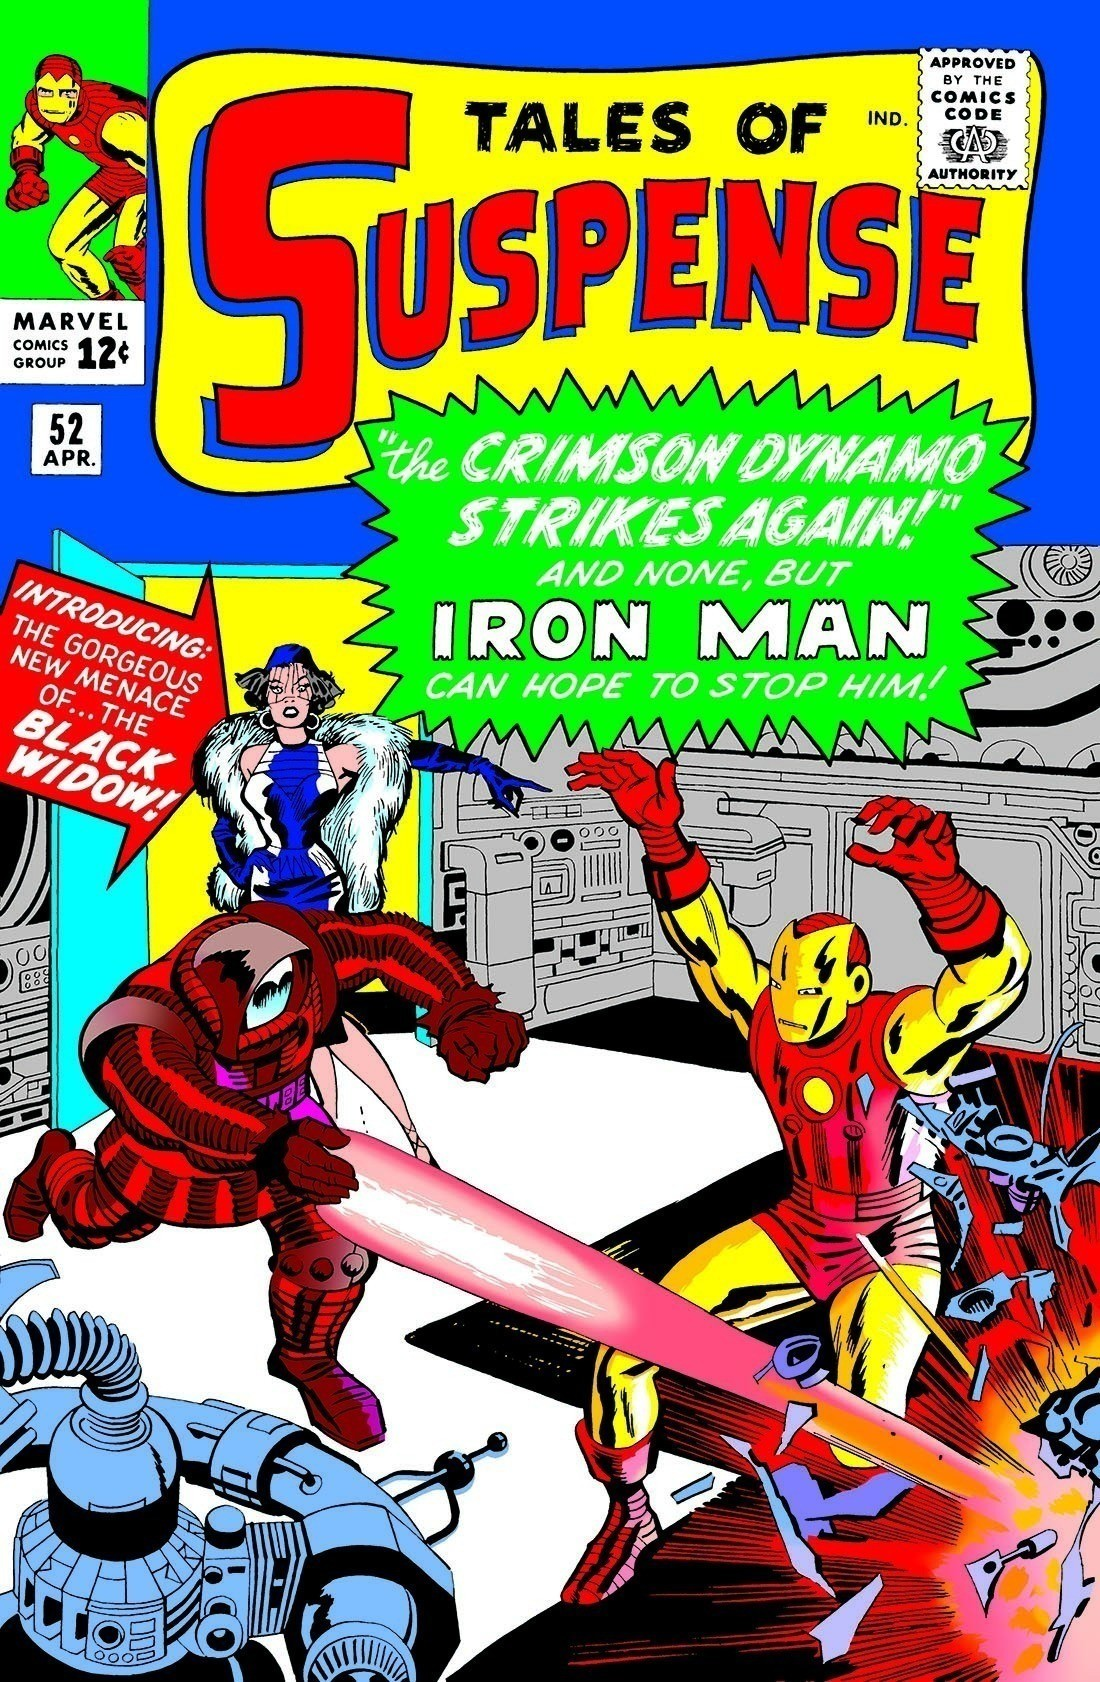 『Tales of Suspense』 #52。